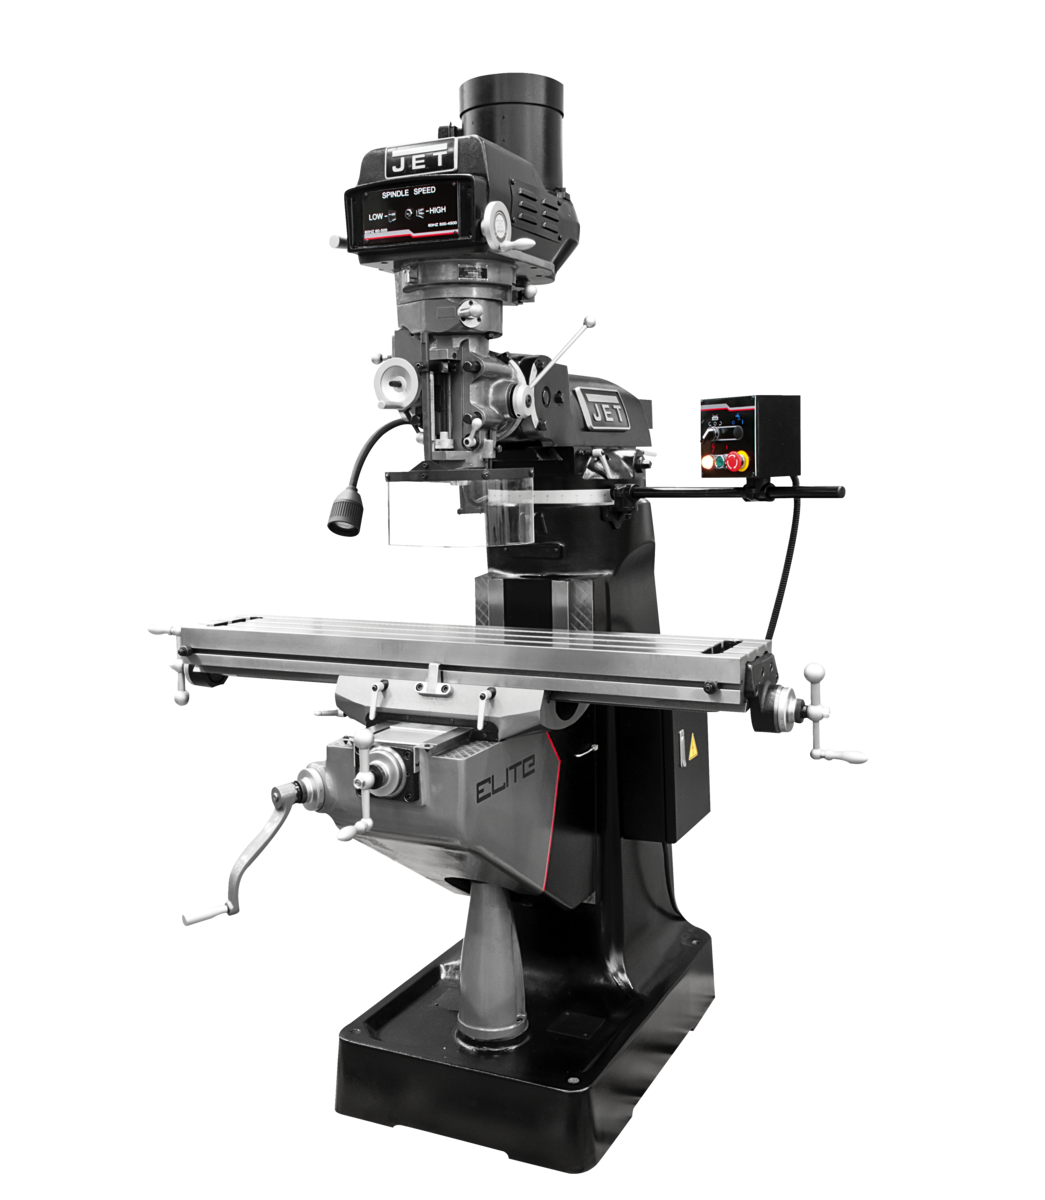 ETM-949 Mill with 3-Axis ACU-RITE 303 (Quill) DRO and Servo X, Y-Axis Powerfeeds and USA Air Powered Draw Bar